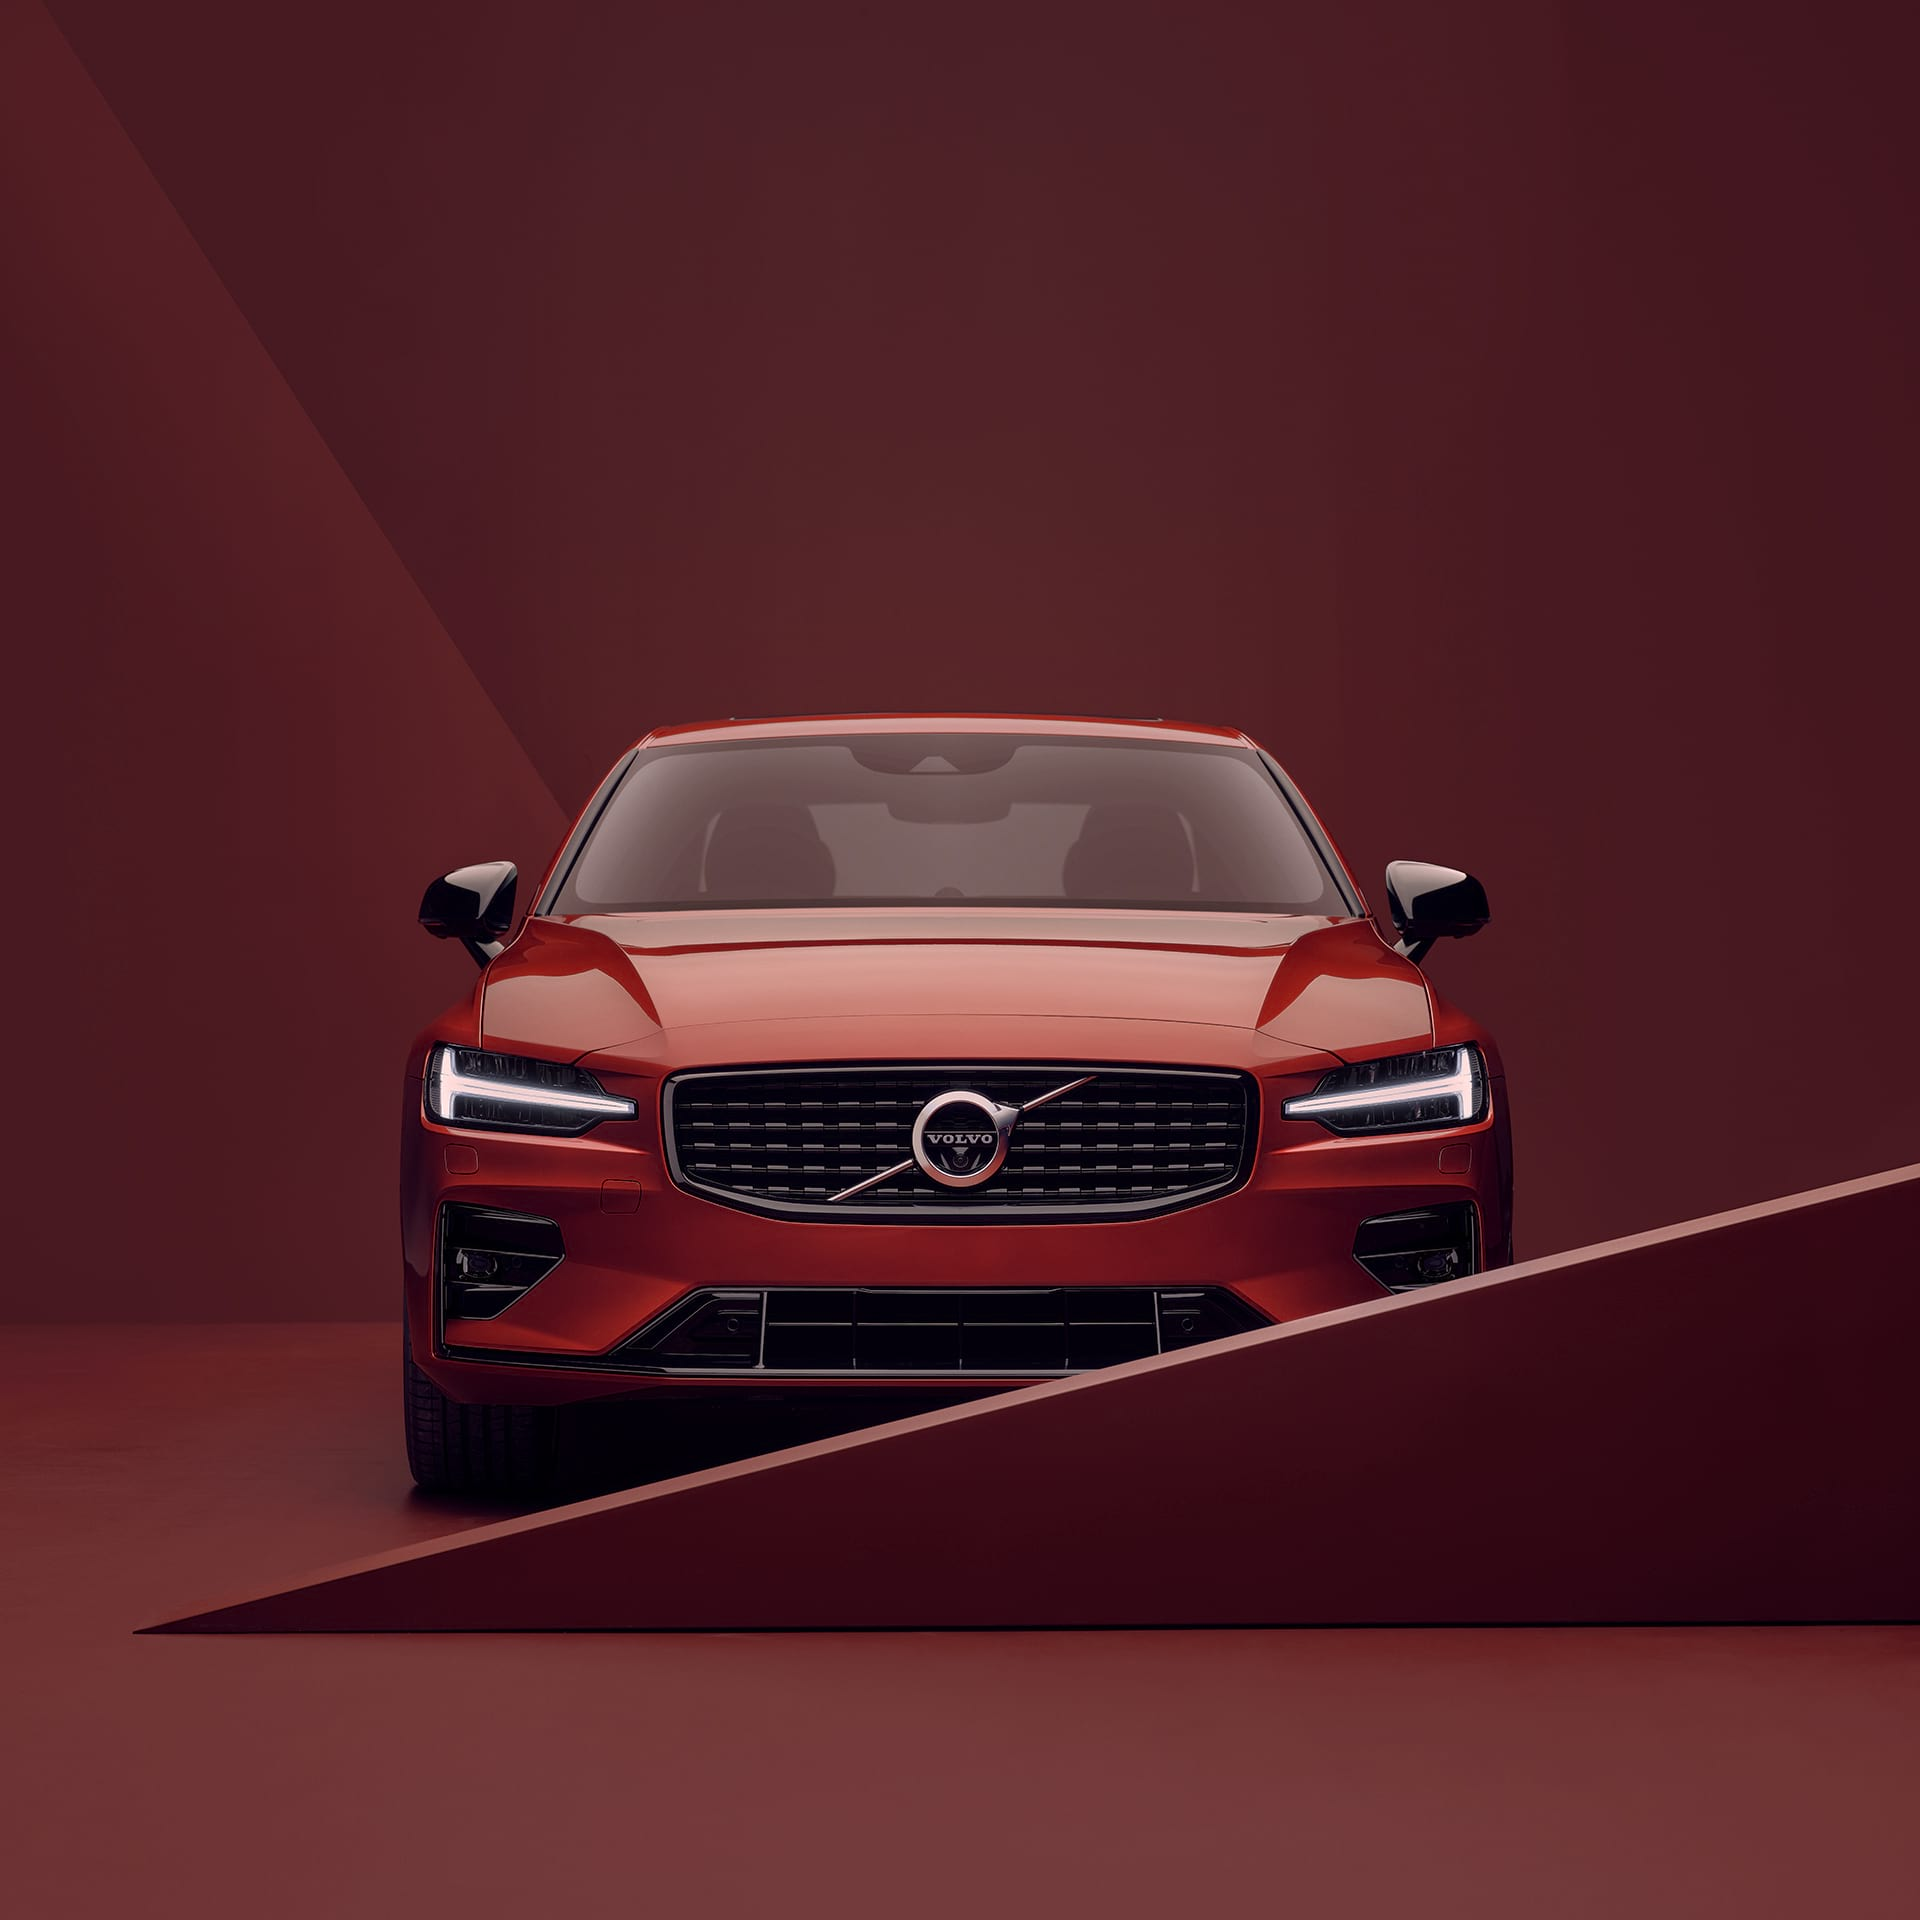 The front exterior of a red Volvo S60 in a red surrounding